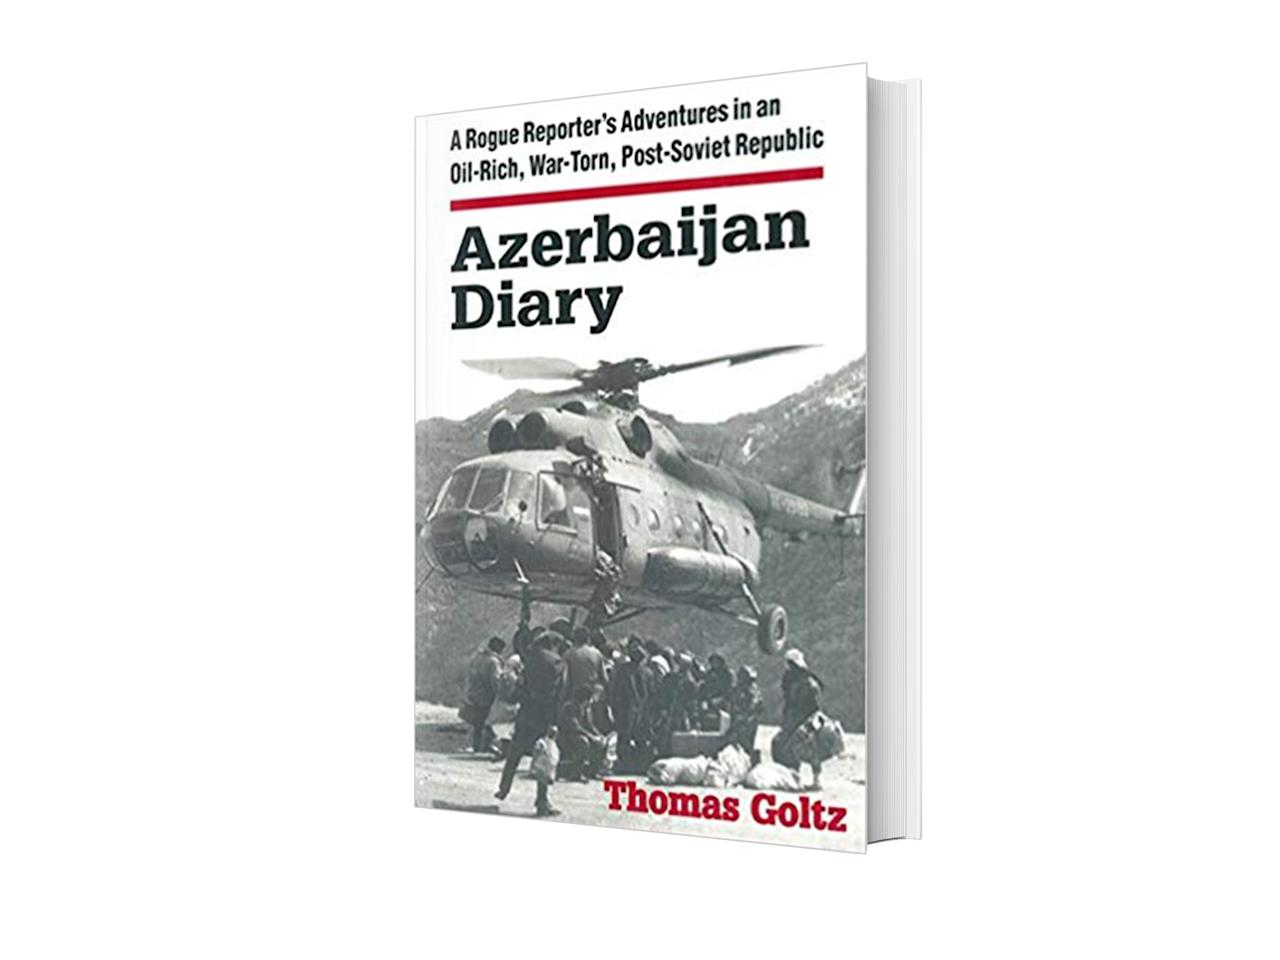 """<p>""""<em>The Azerbaijan Diary: A Rogue Reporter's Adventures in an Oil-Rich, War-Torn, Post-Soviet Republic</em> provides a unique, albeit somewhat painful, firsthand account of the birth of independent Azerbaijan. Traveling to the region on an academic grant, Thomas Goltz becomes the first outside contemporary chronicler of a new state emerging from the ruins of the USSR. His passionate, provocative, and perceptive writing on the difficult early years of independence sets a dramatic contrast to Azerbaijan's successful development today.""""—H.E. Elin Süleymanov</p> <p><strong>Buy now:</strong> <em>The Azerbaijan Diary</em> by Thomas Goltz, <a href=""""https://www.amazon.com/Tobacconist-Robert-Seethaler-ebook/dp/B01EZ1MYVC""""><em>am</em></a><a href=""""https://amzn.to/2MUuCCQ"""" rel=""""nofollow"""" target=""""_blank""""><em>azon.com</em></a></p>"""